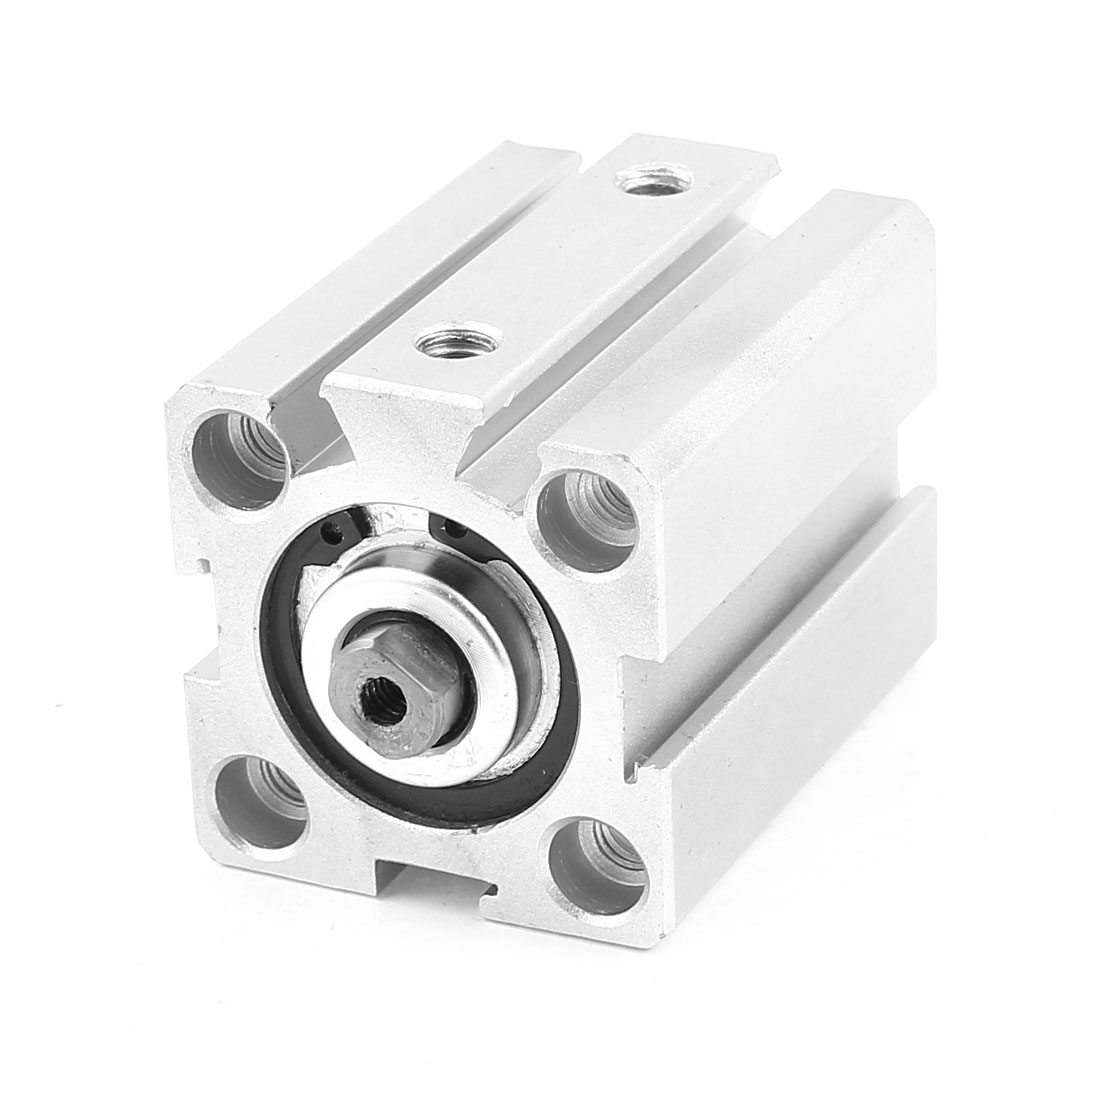 SDA20x25 20mm Bore 25mm Stroke Single Rod Aluminum Alloy Pneumatic Air Cylinder